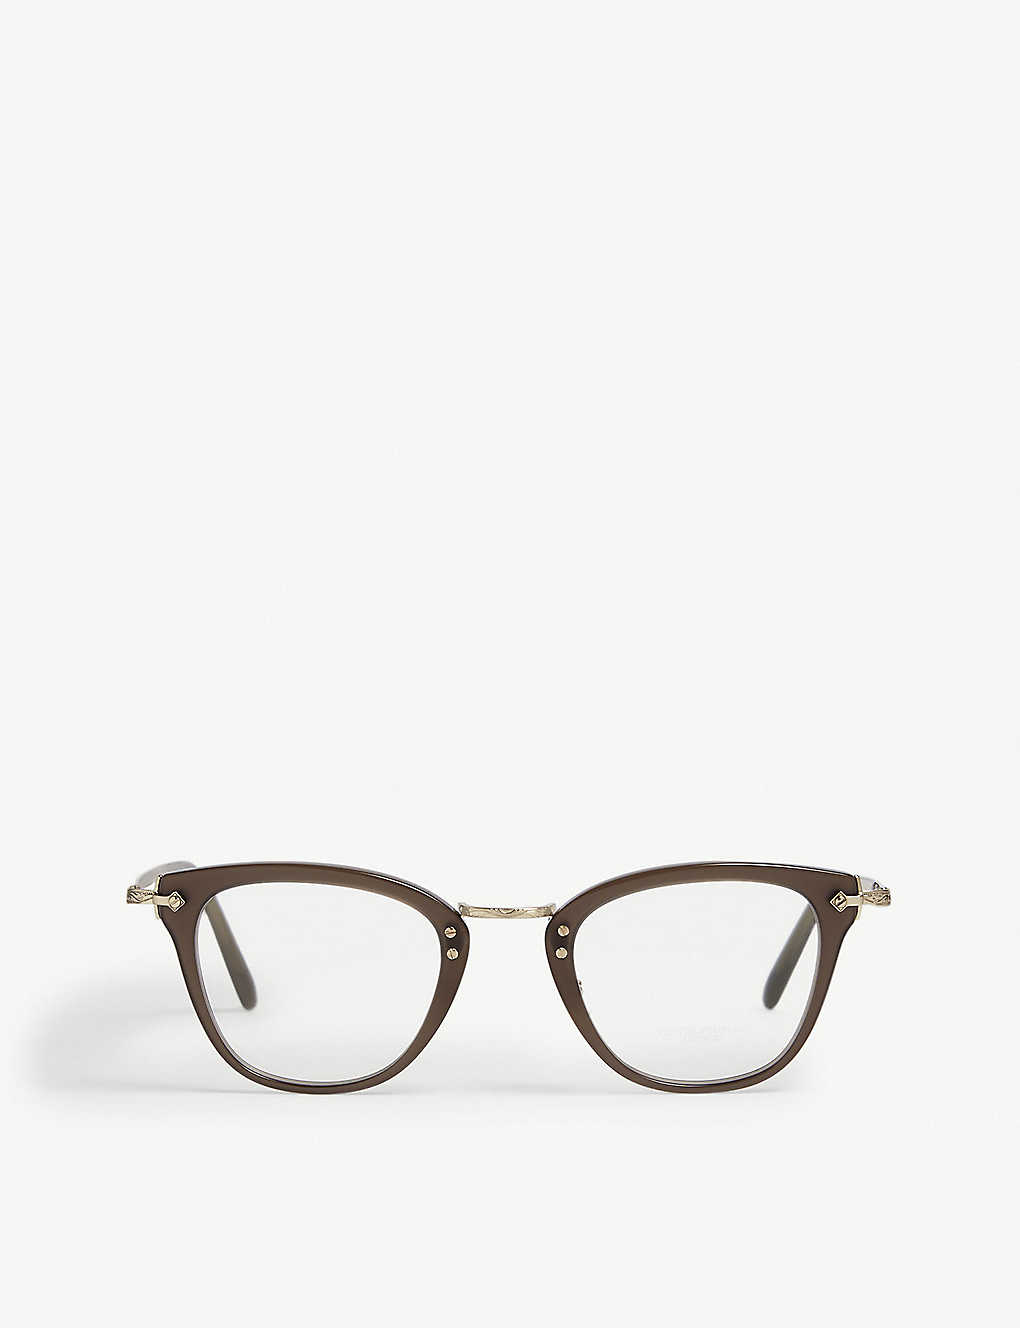 OLIVER PEOPLES: Keery square glasses